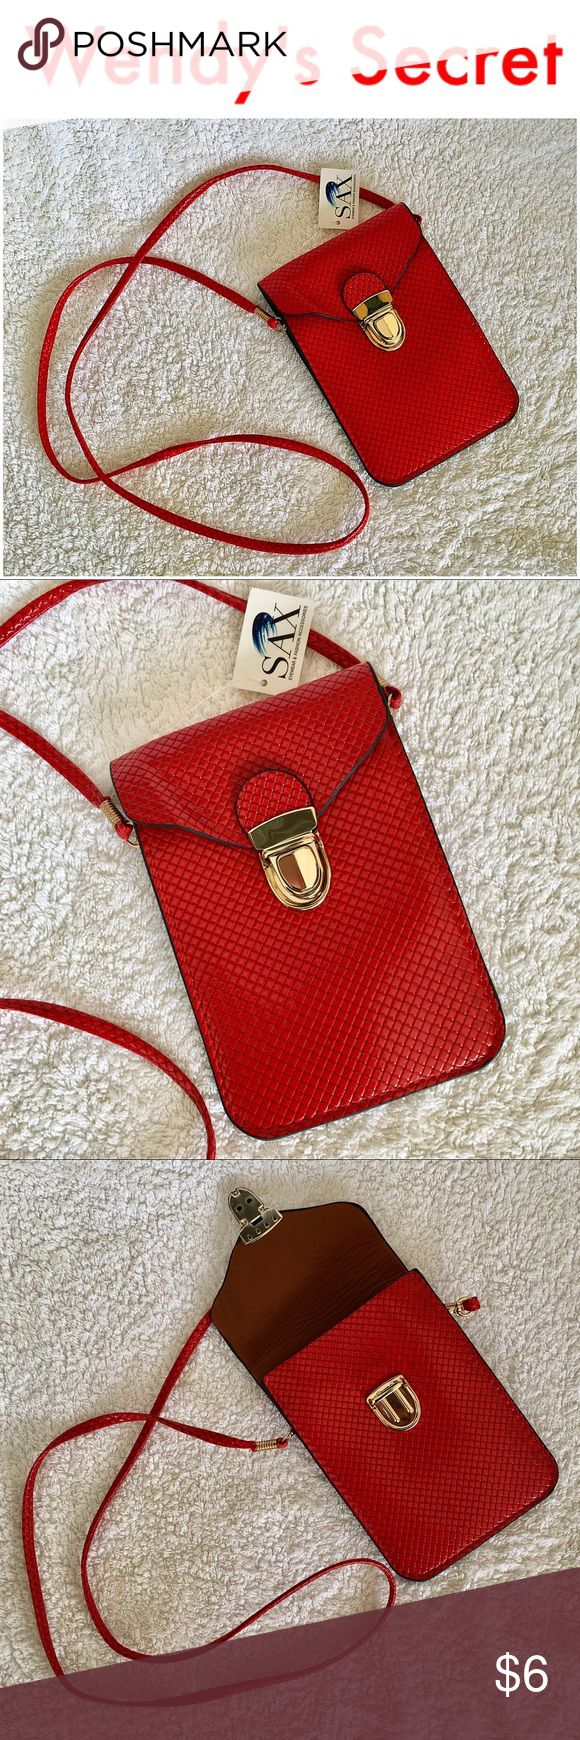 🆕 •SAX• Cell Phone Crossbody Case Purse New with tags SAX Cell Phone Crossbody Case Purse. Perfect fit for your iPhone 4, 5, 6, Samsung Galaxy series and almost all other smartphones. Protects cell phone. With PU leather exterior, ultra soft interior and secure lock. Avoids glass scratches. Shoulder strap convertible to neck strap. Main pocket, can comfortably hold your iPhone or smartphone and most important things: cash, cards, ID, passport etc. leaving your hands free. Approx…